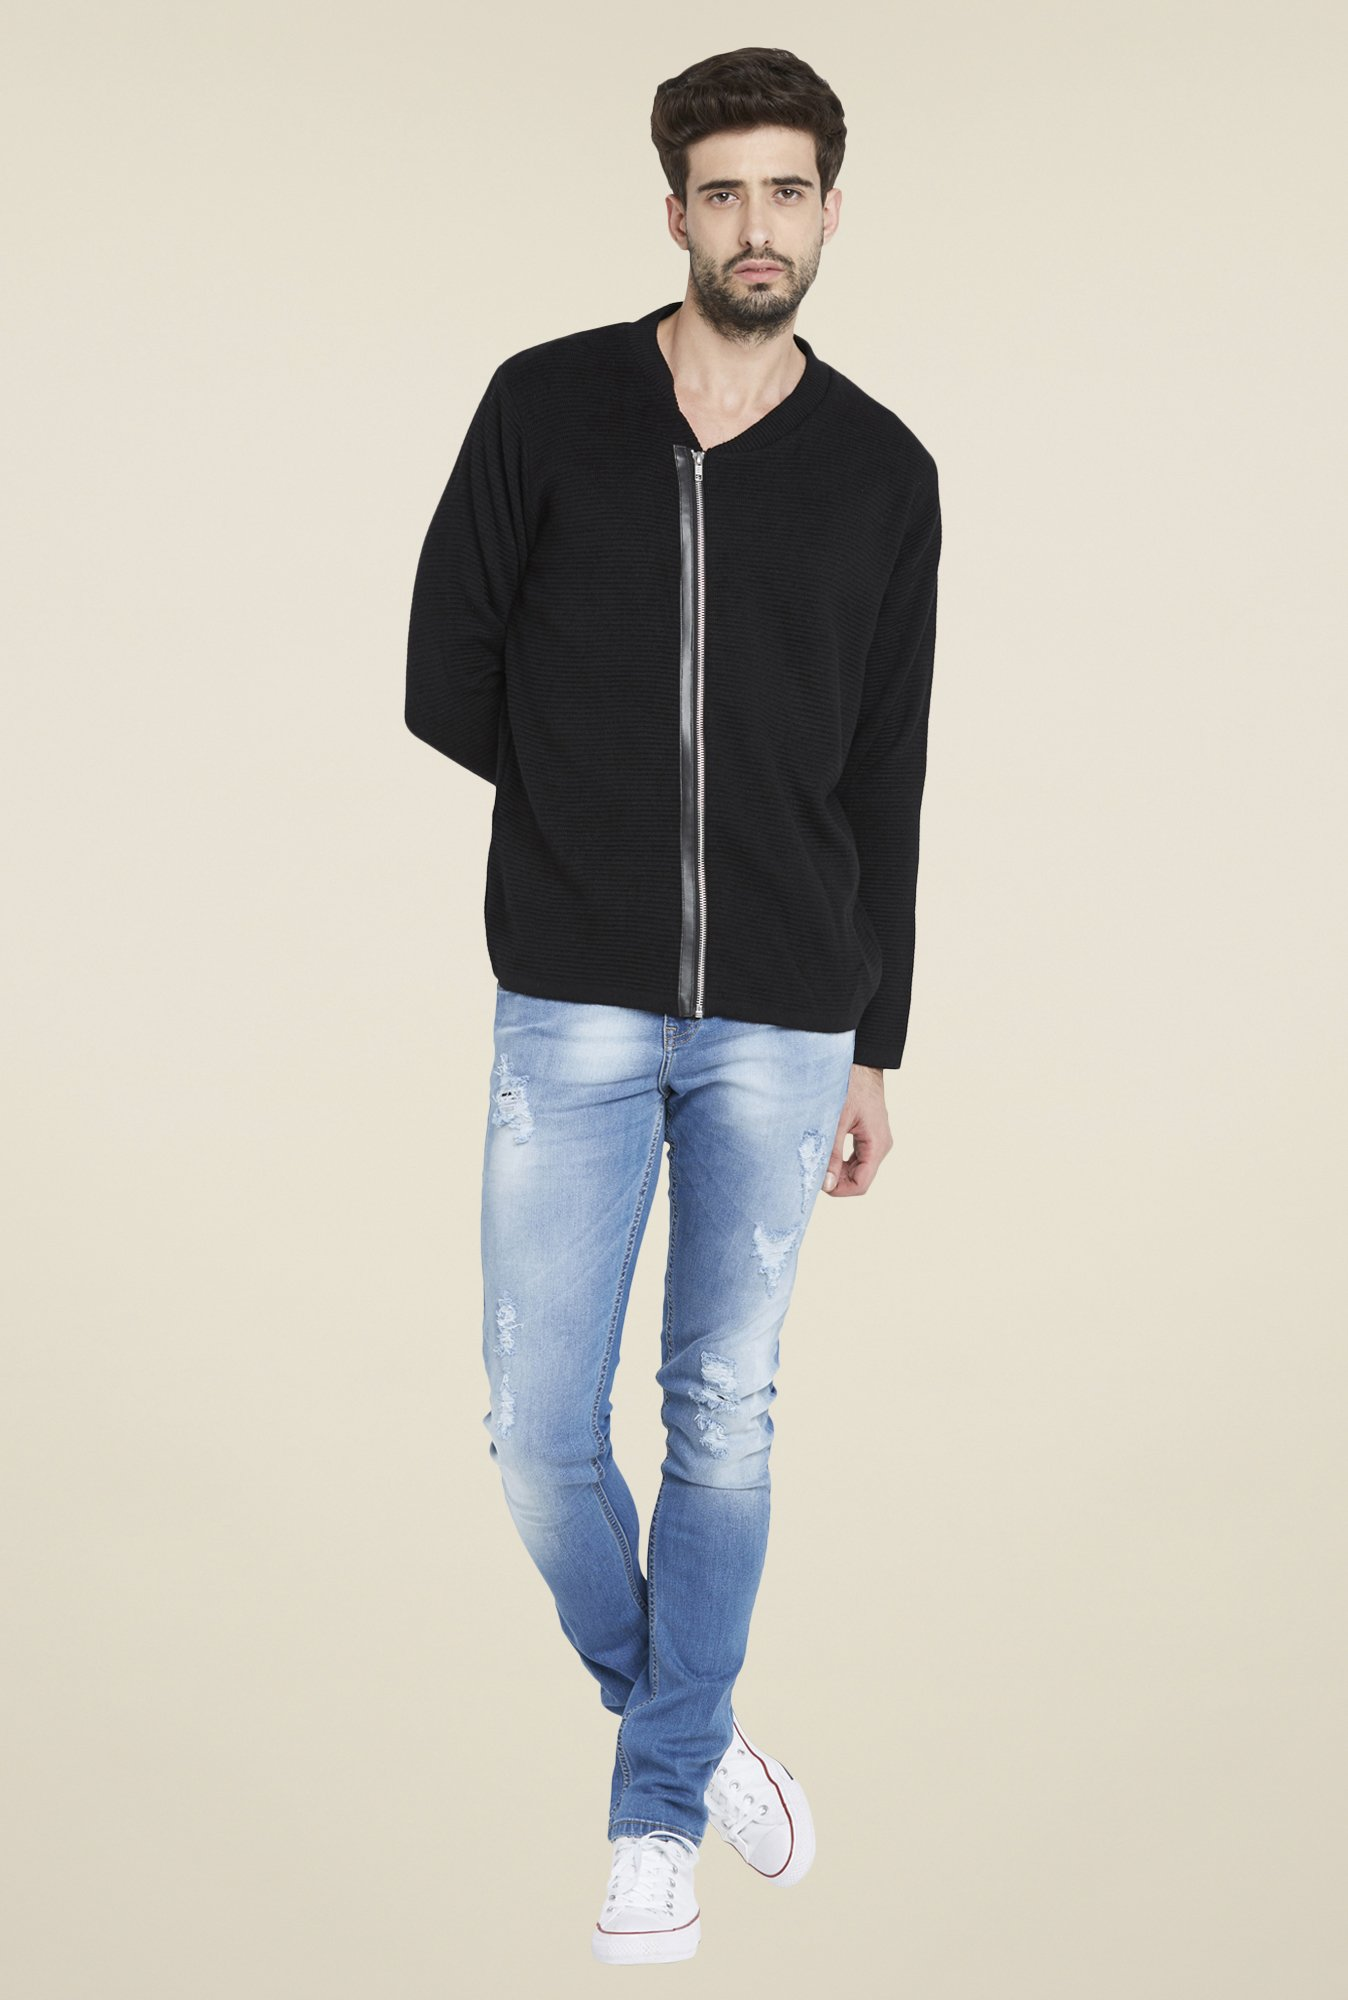 Globus Black Solid Sweater